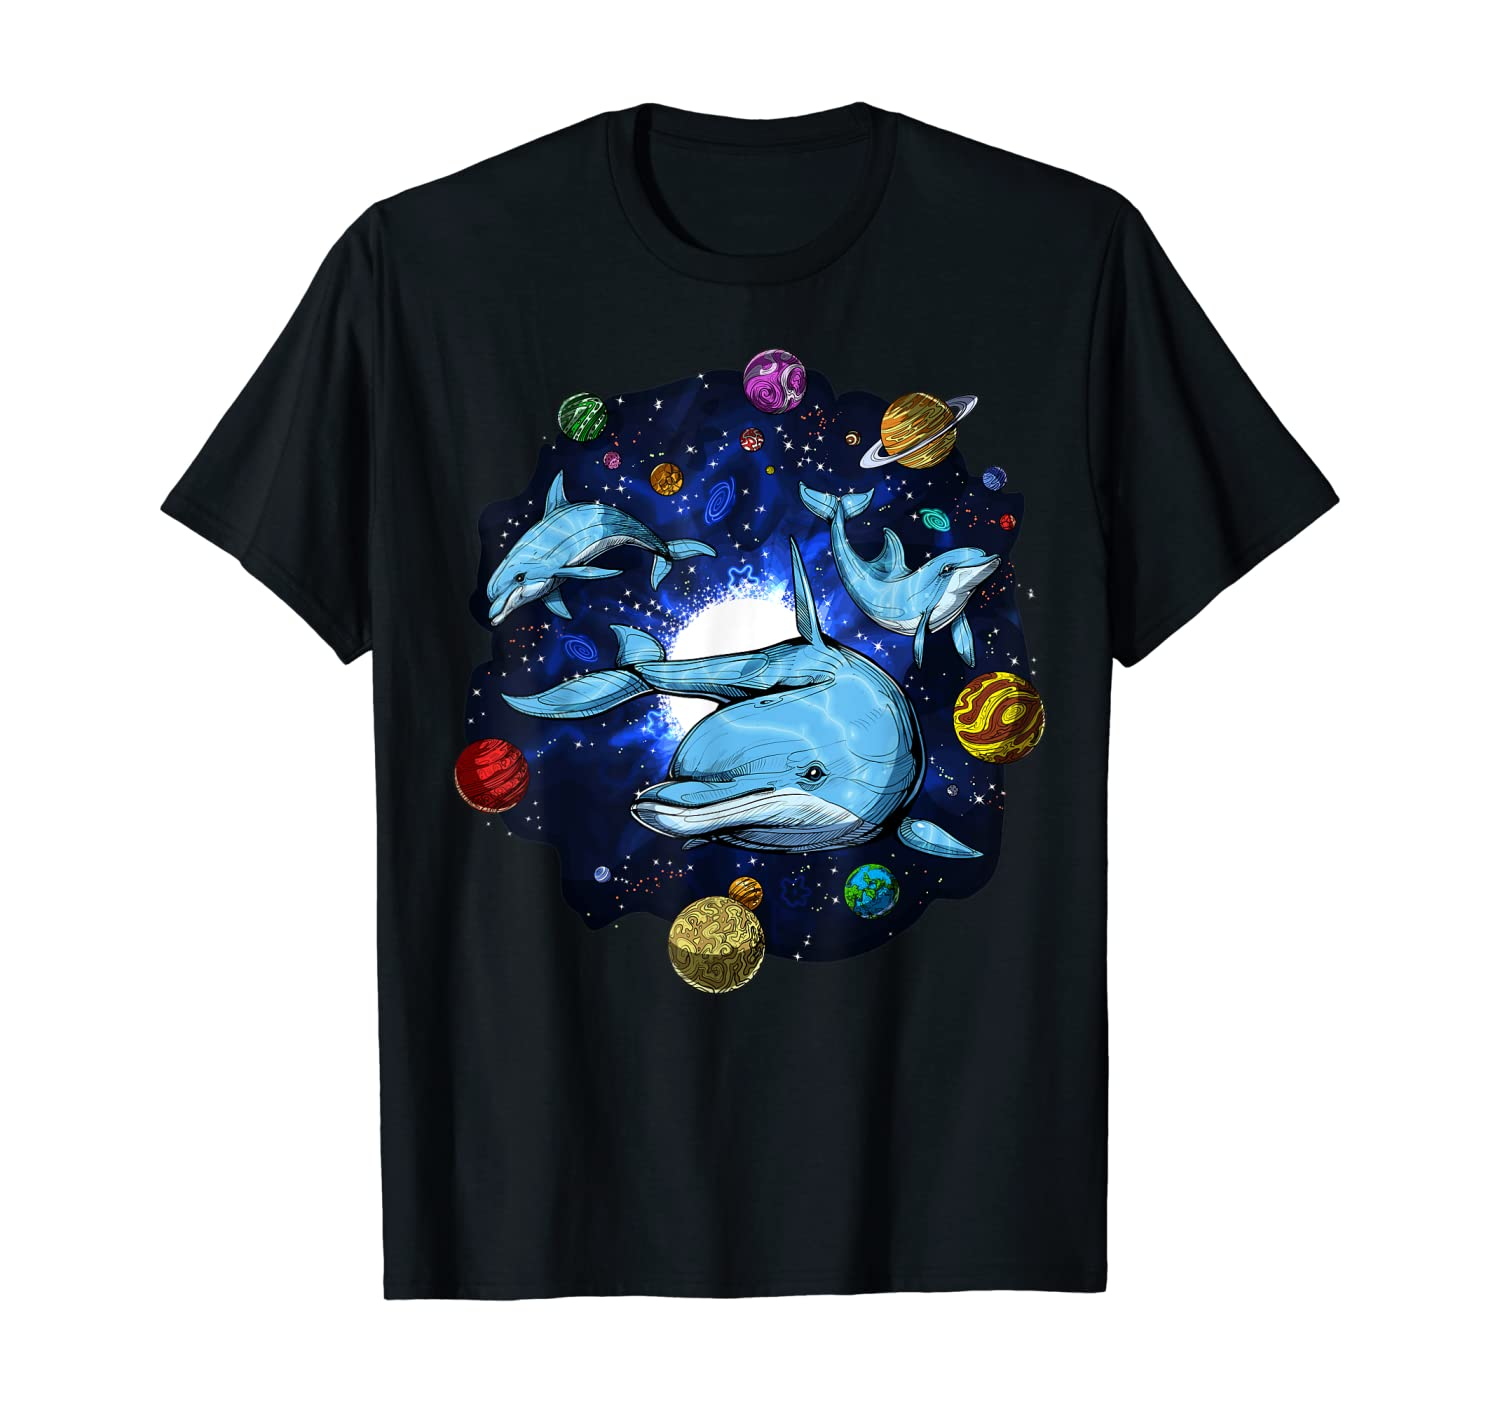 Space Dolphins Psychedelic Cosmic Planets Fantasy Ocean T-Shirt